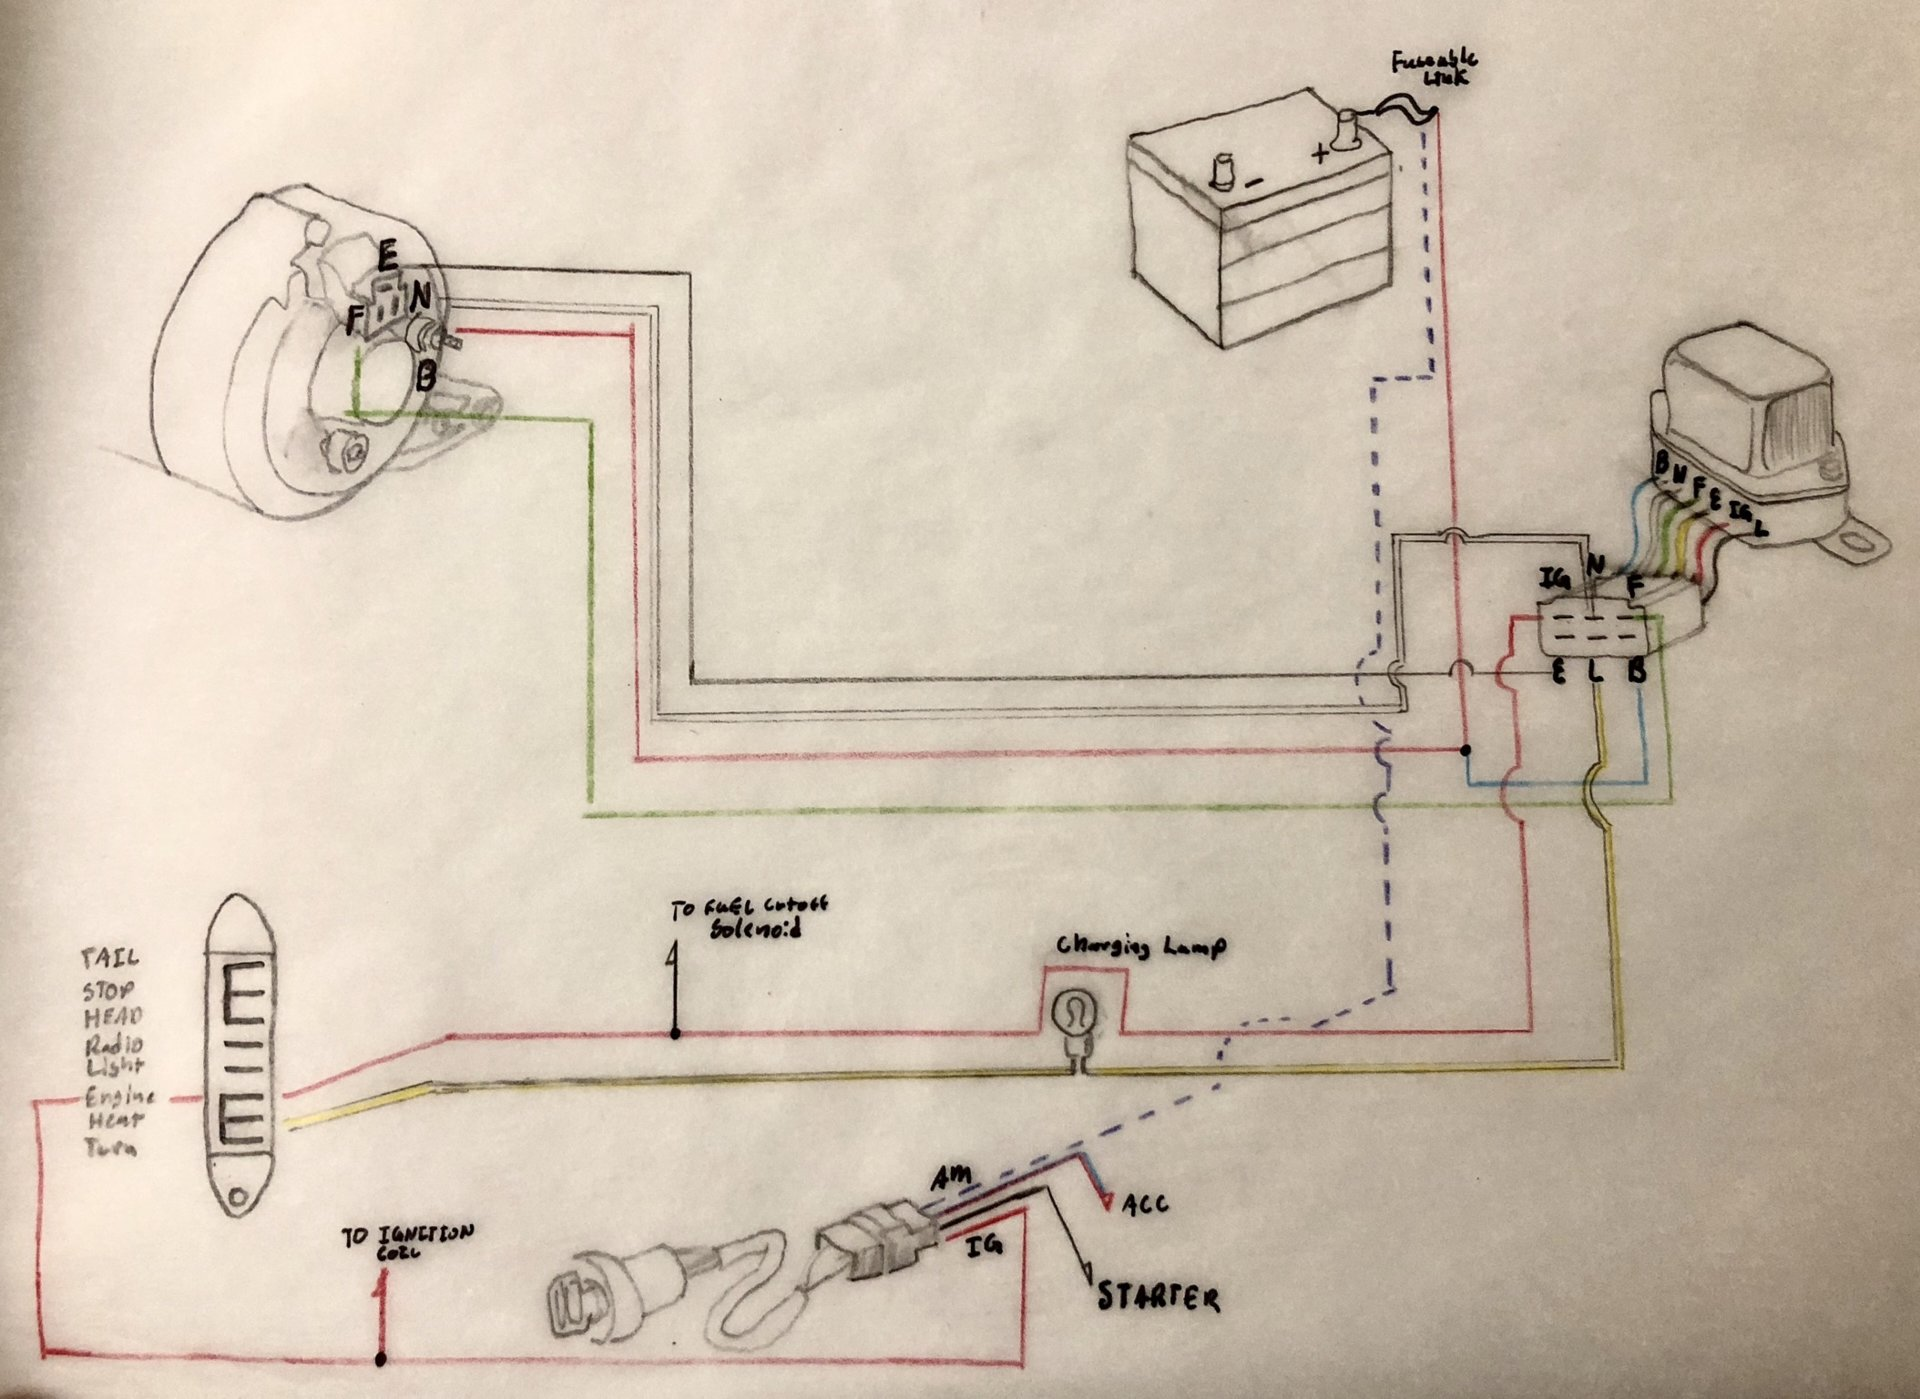 Ingram Voltage Regulator Wiring Diagram